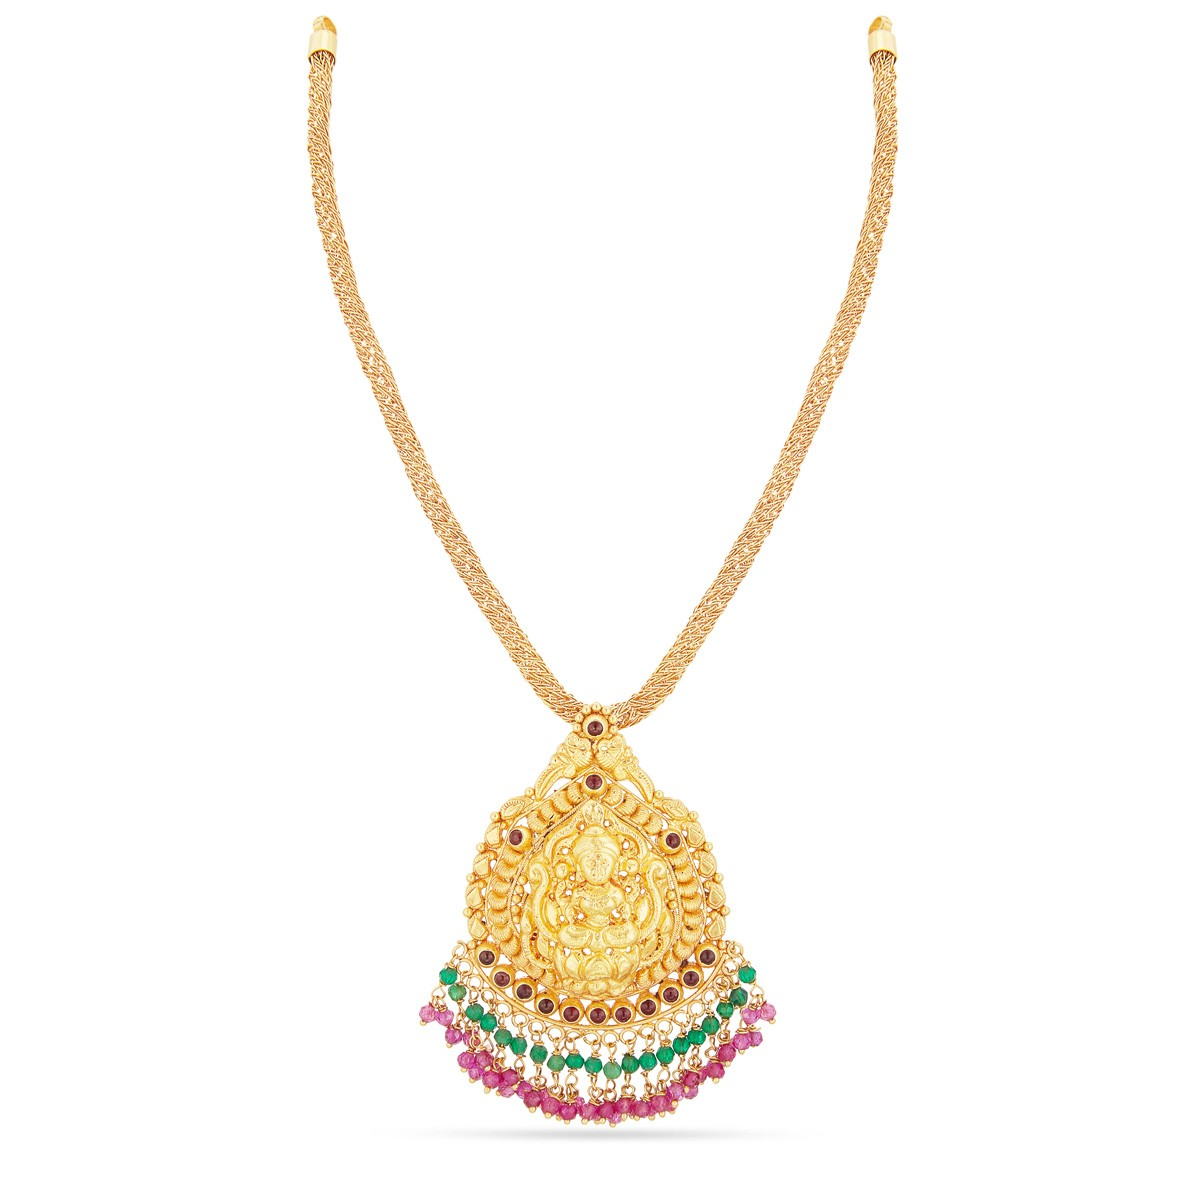 Light Weight Gold Necklace Designs With Price in Rupees ~ South ...